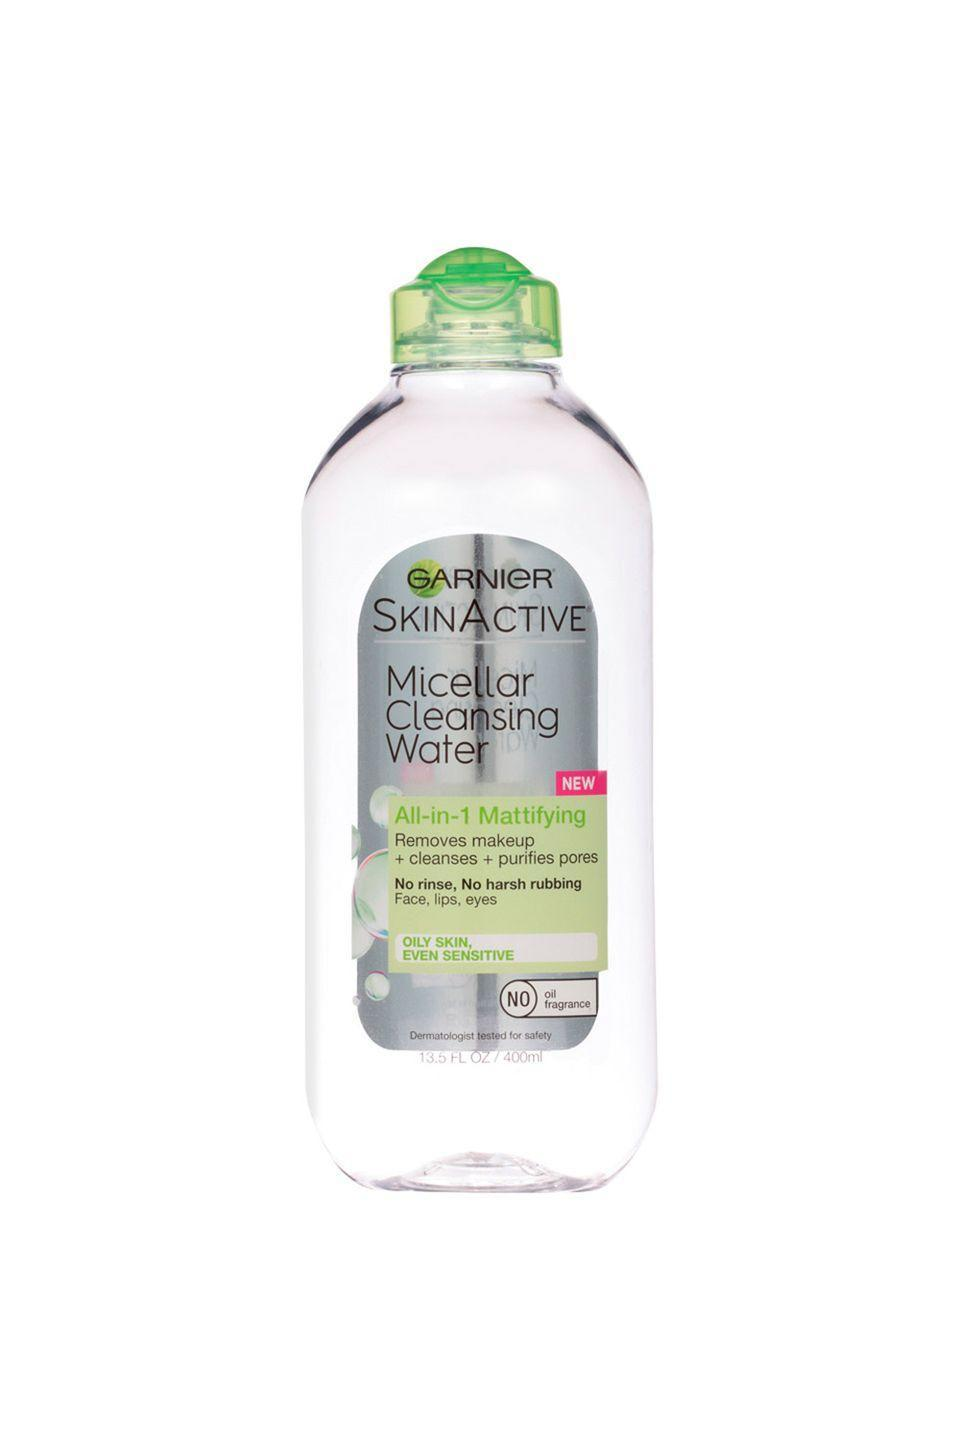 """<p>Swipe it across your face and speed up your morning routine. </p><p>Garnier SkinActive Micellar Cleansing Water All-in-1 Mattifying, $9, <a href=""""https://www.ulta.com/skinactive-micellar-cleansing-water-all-in-1-mattifying?productId=xlsImpprod15541113"""" rel=""""nofollow noopener"""" target=""""_blank"""" data-ylk=""""slk:ulta.com"""" class=""""link rapid-noclick-resp"""">ulta.com</a></p>"""